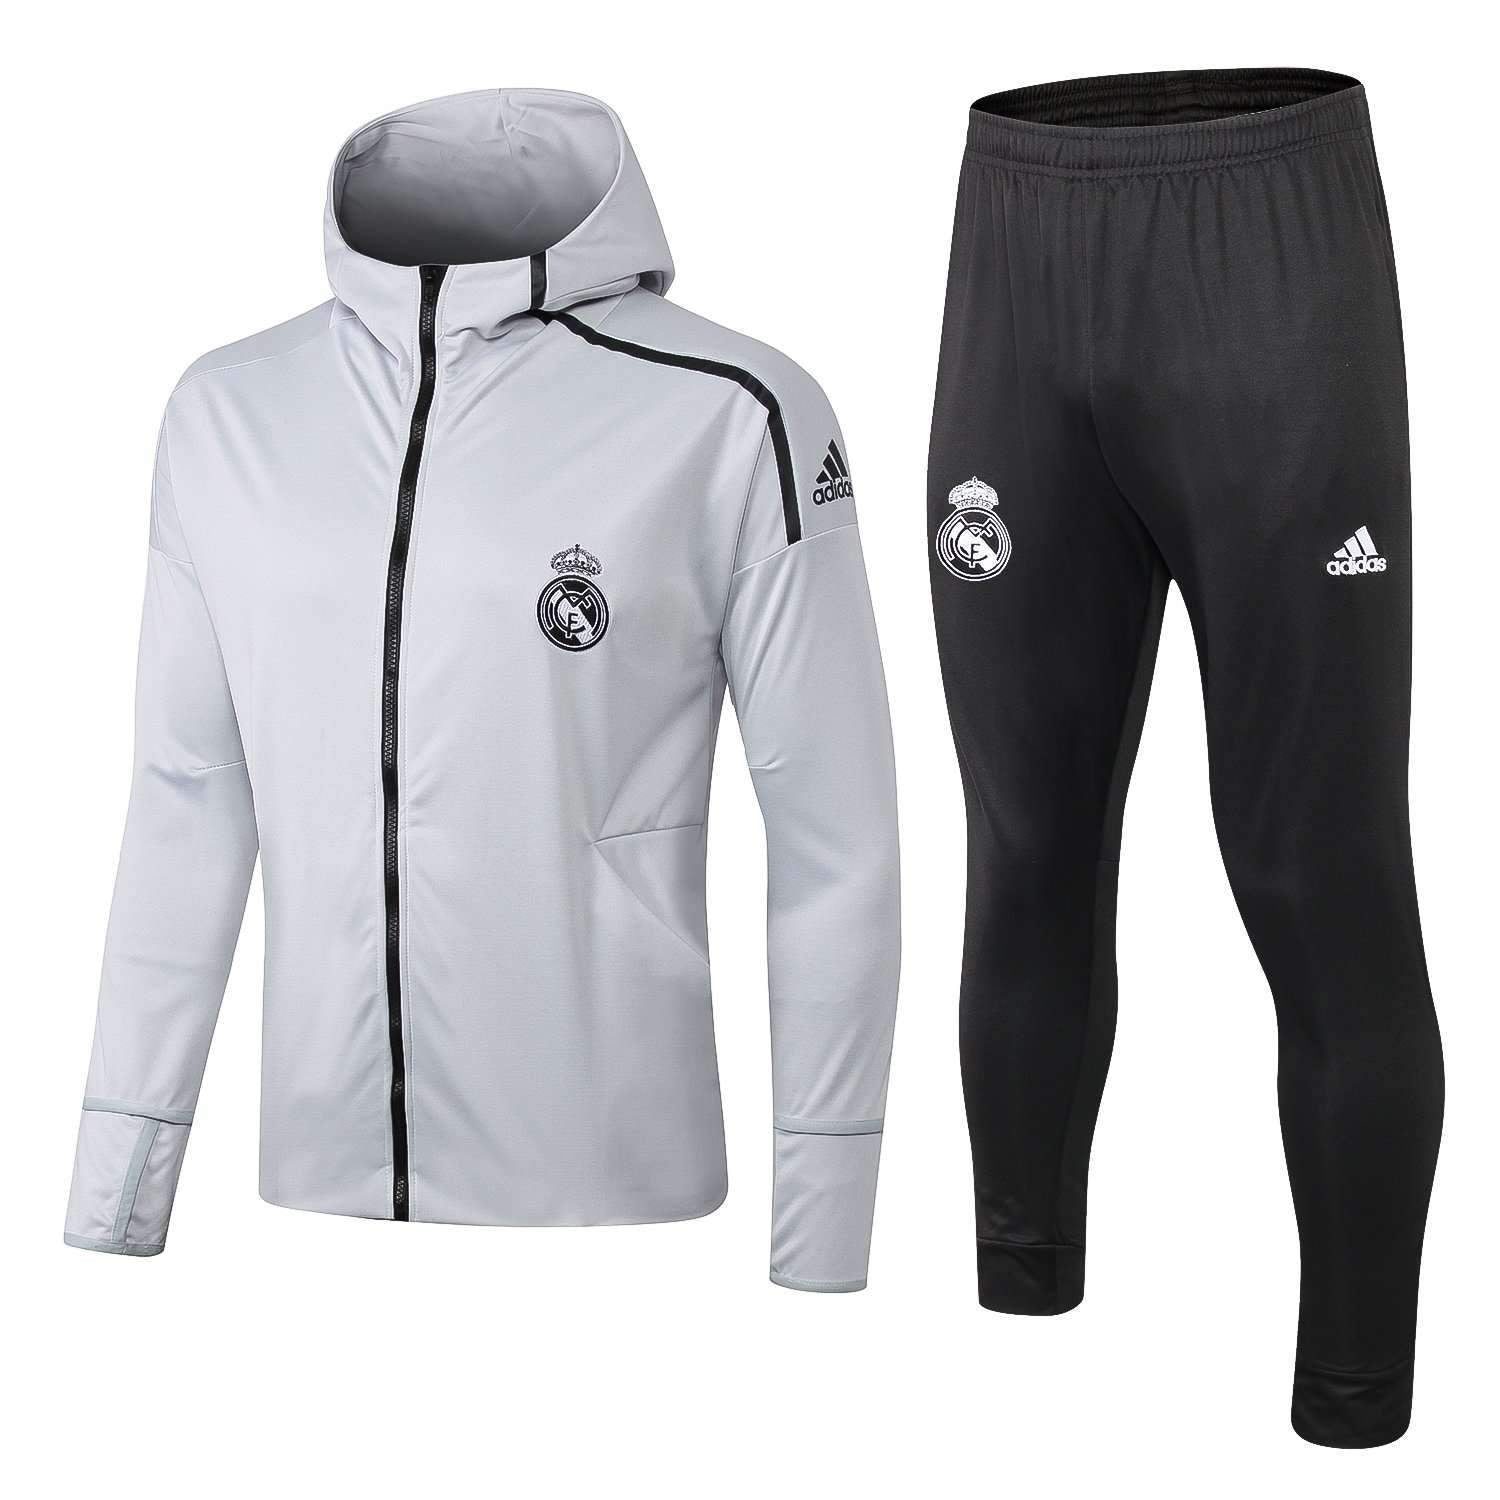 authentic quality aliexpress later Real Madrid C.F. Football club Adidas 2018-19 Men's Pre-Match Replica  Pullover TRAINING Zip Casual TOPS TRACKSUIT FÚTBOL CALCIO SOCCER FUSSBALL  ...